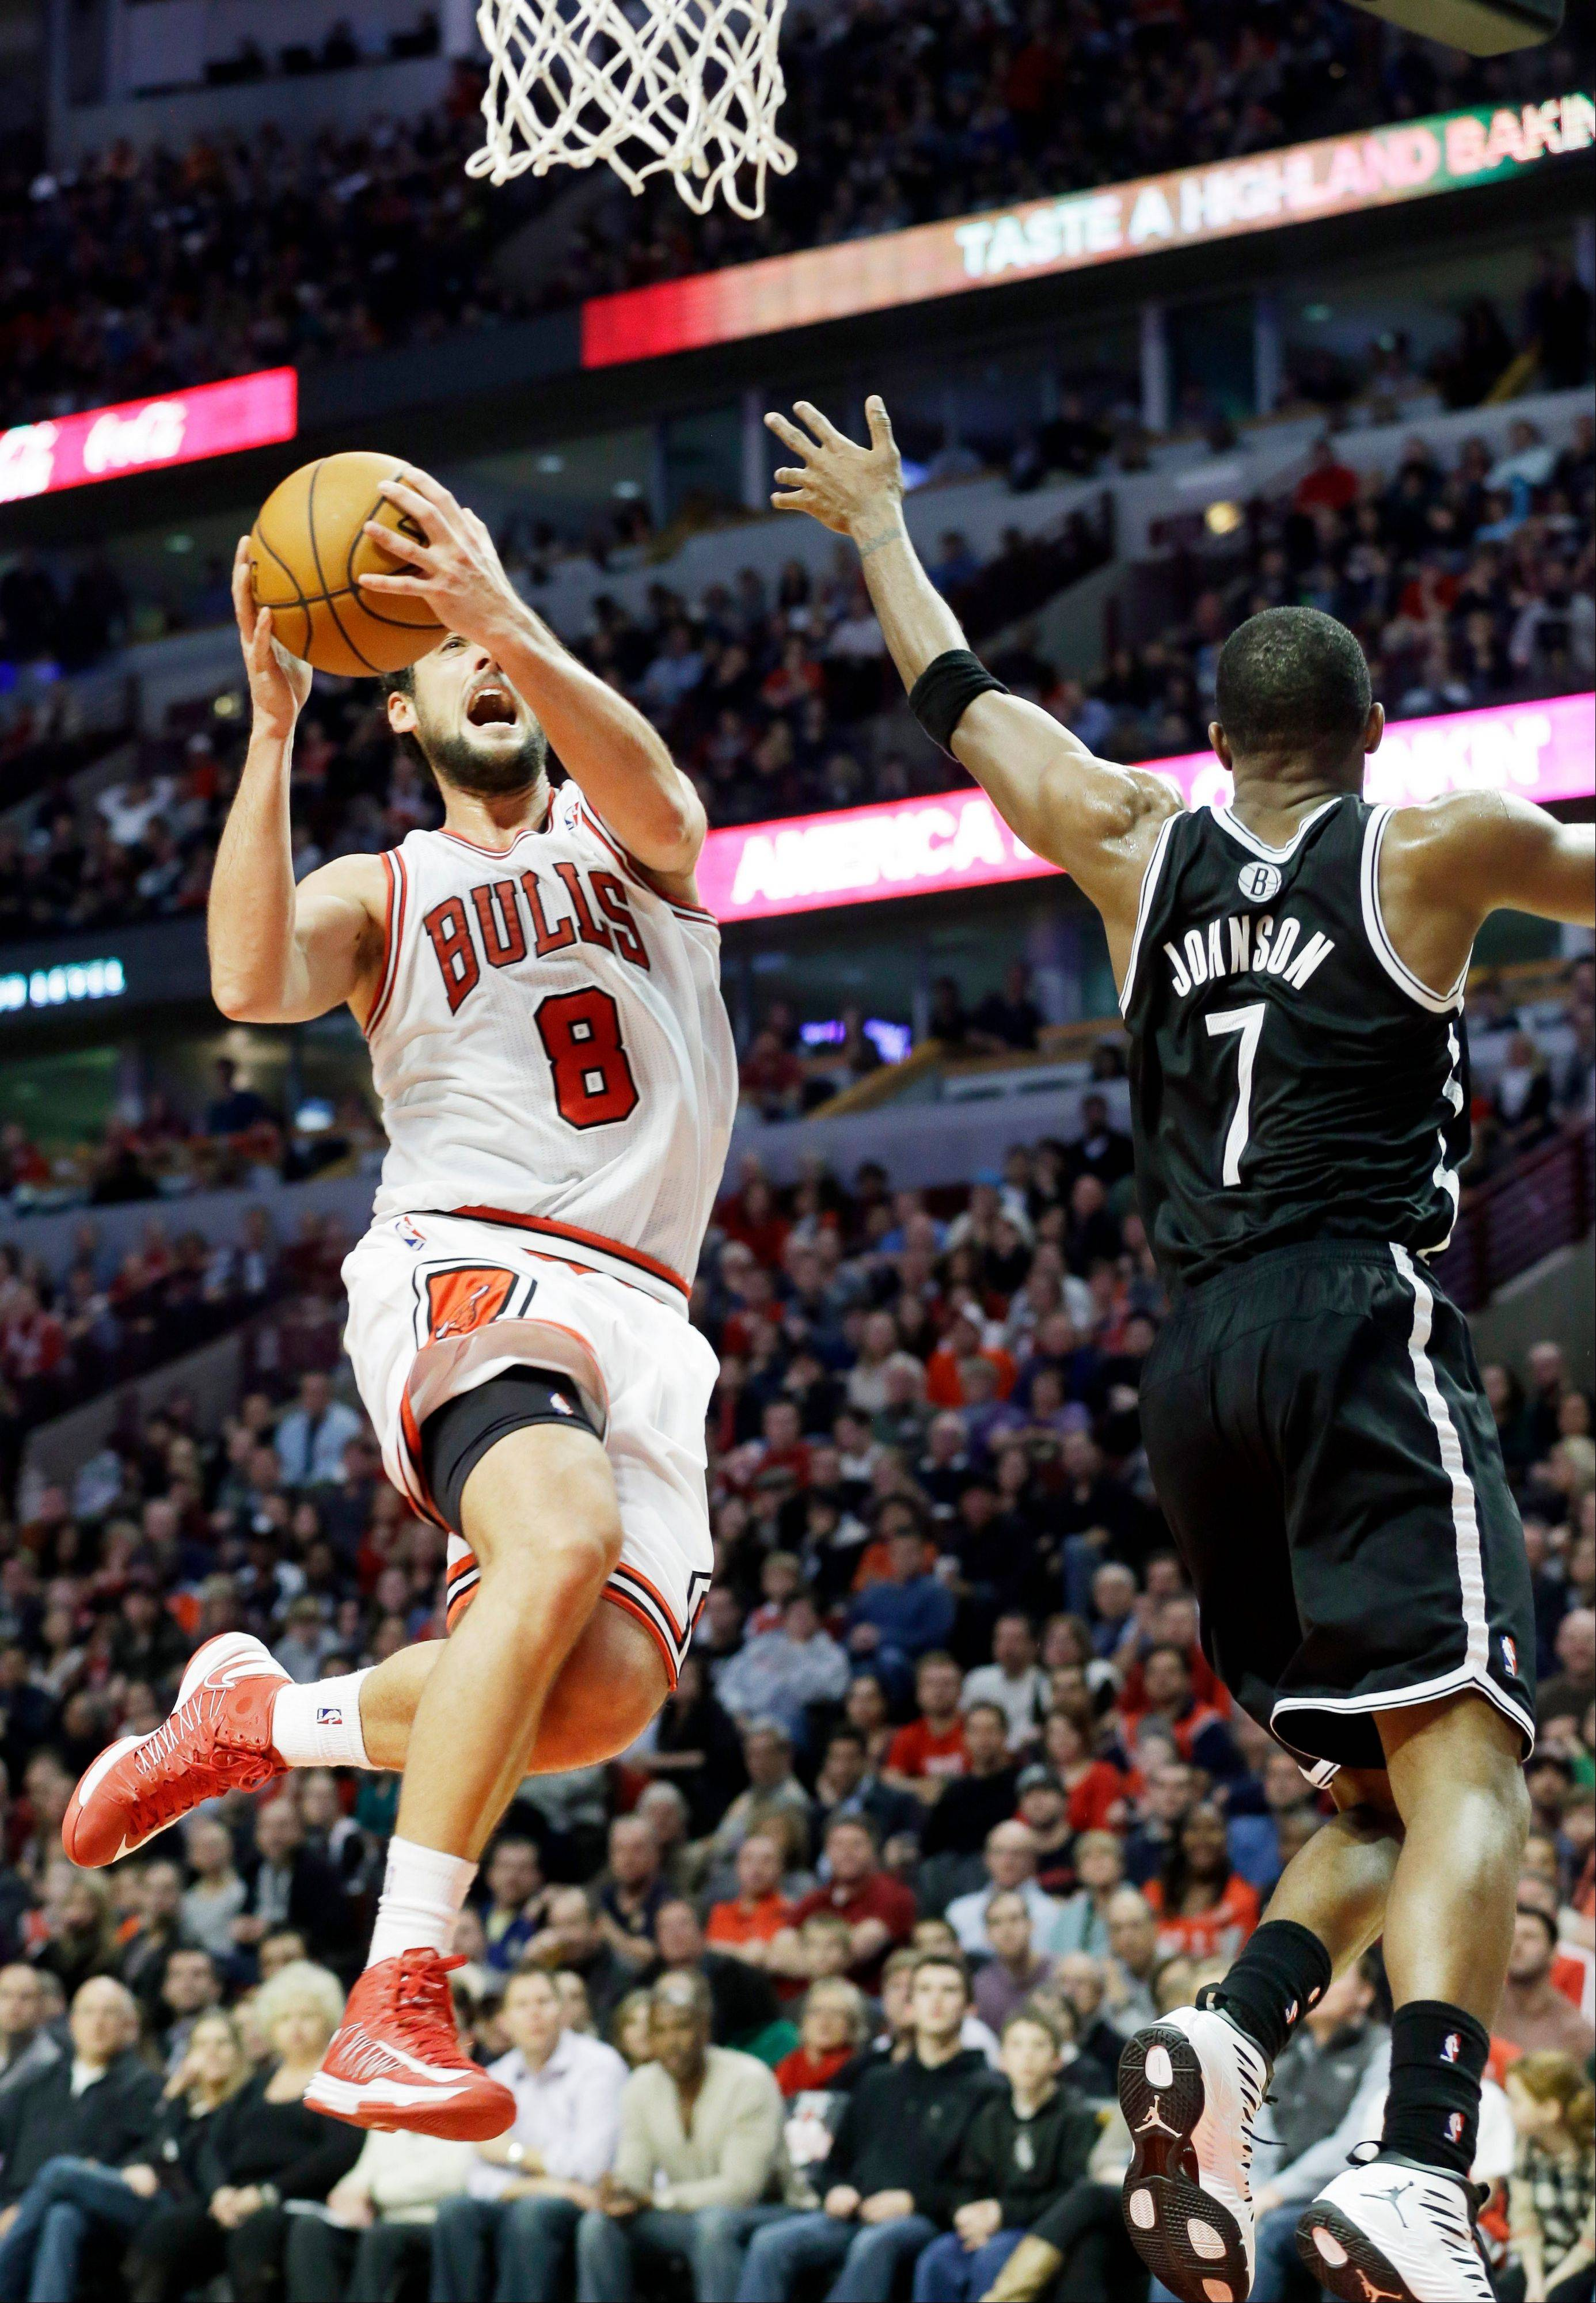 Marco Belinelli, of, Italy, left, drives to the basket against Brooklyn Nets guard Joe Johnson during the second half of an NBA basketball game in Chicago on Saturday, Dec. 15, 2012. The Bulls won 83-82.